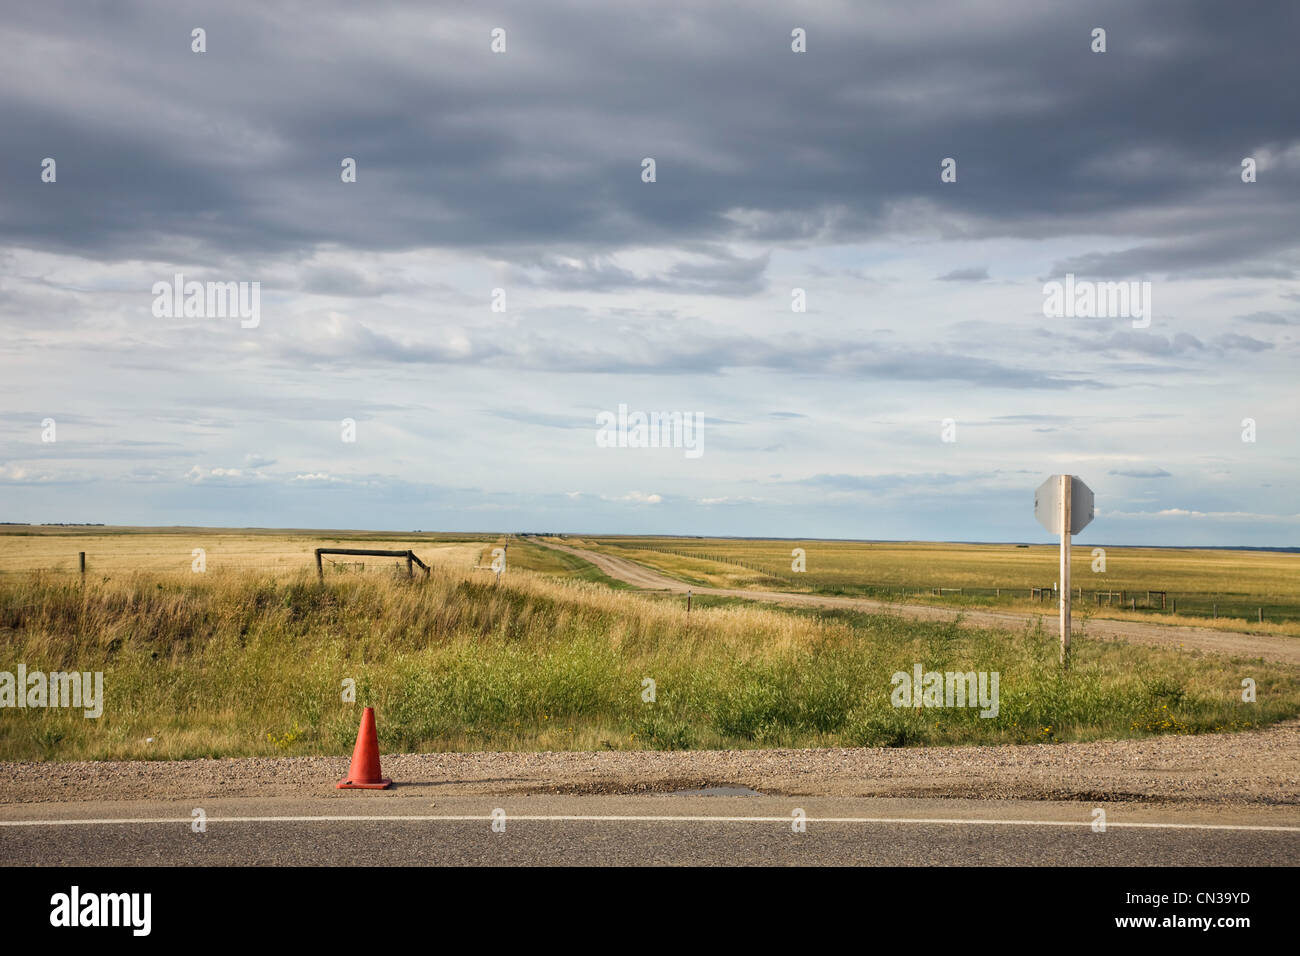 Traffic cone on rural road - Stock Image